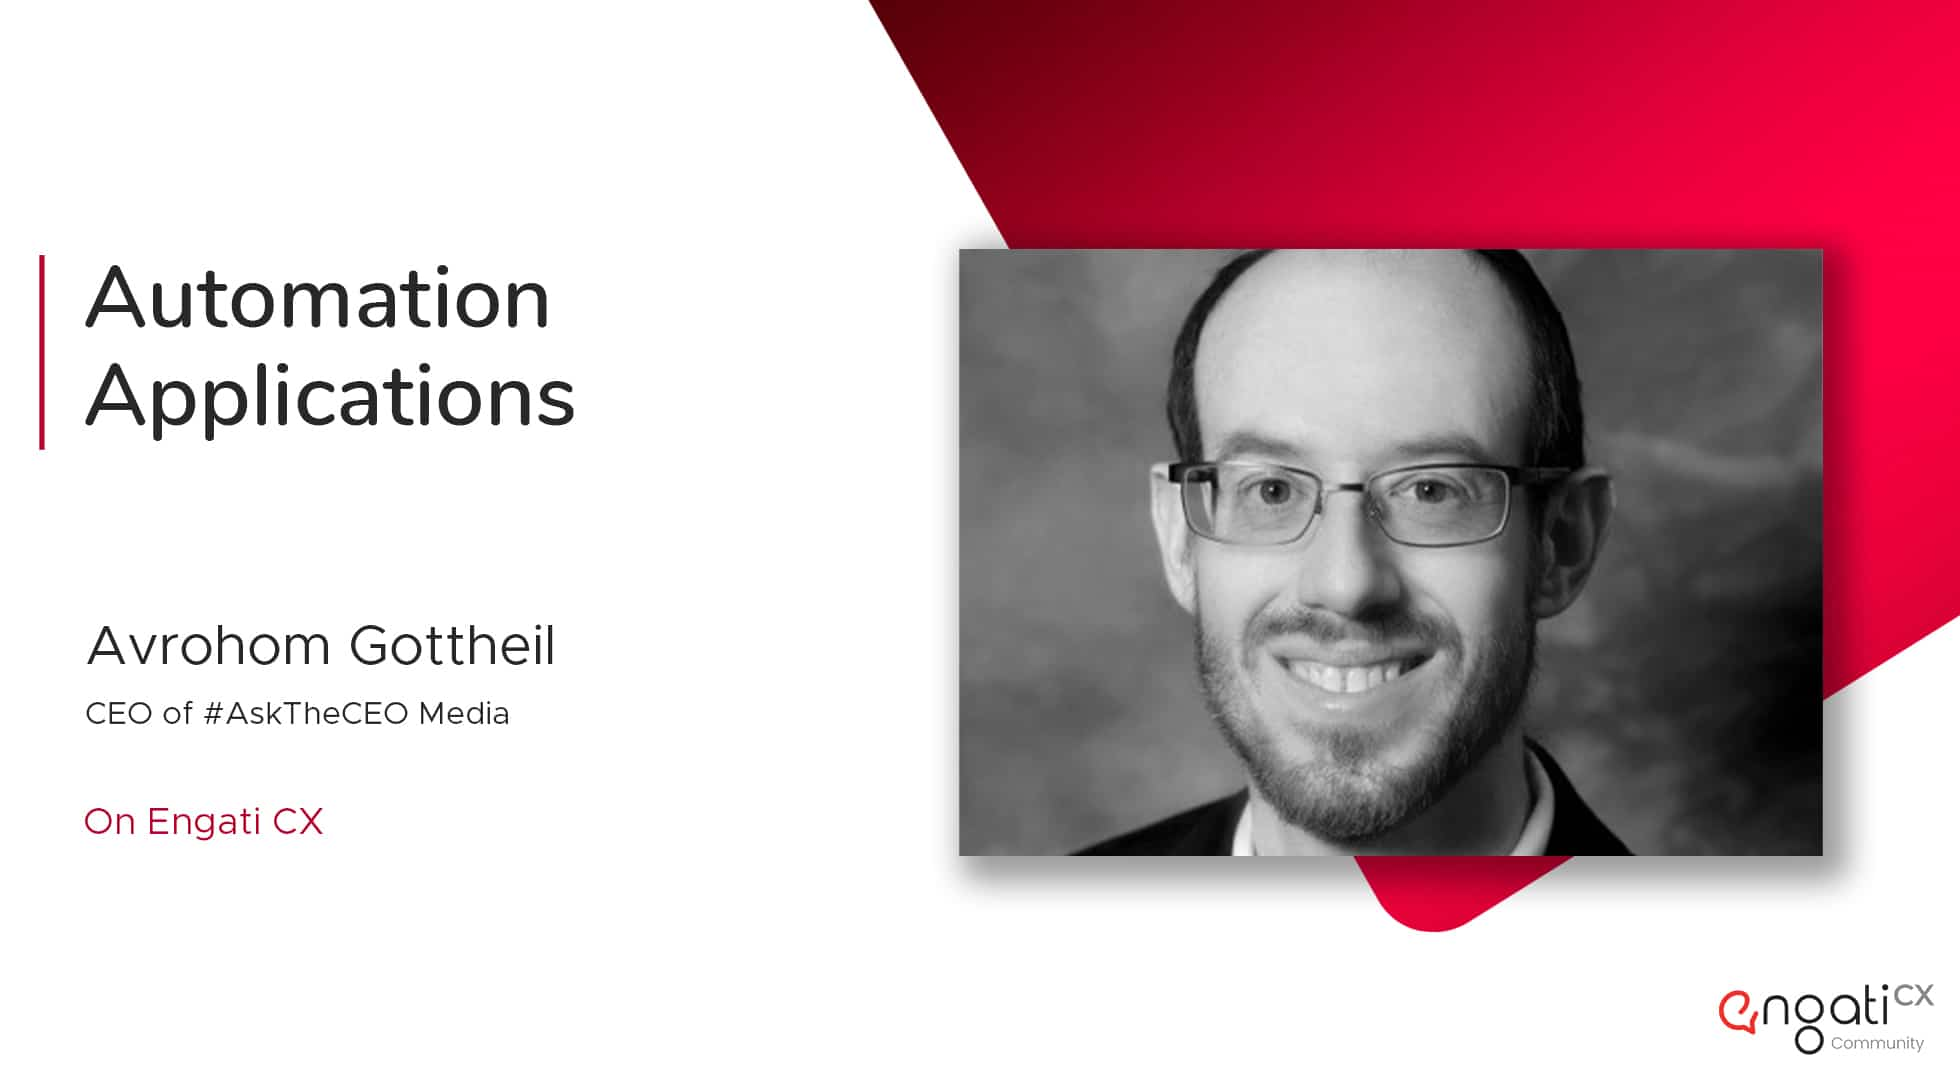 Automation applications in business | Avrohom Gottheil | Engati CX